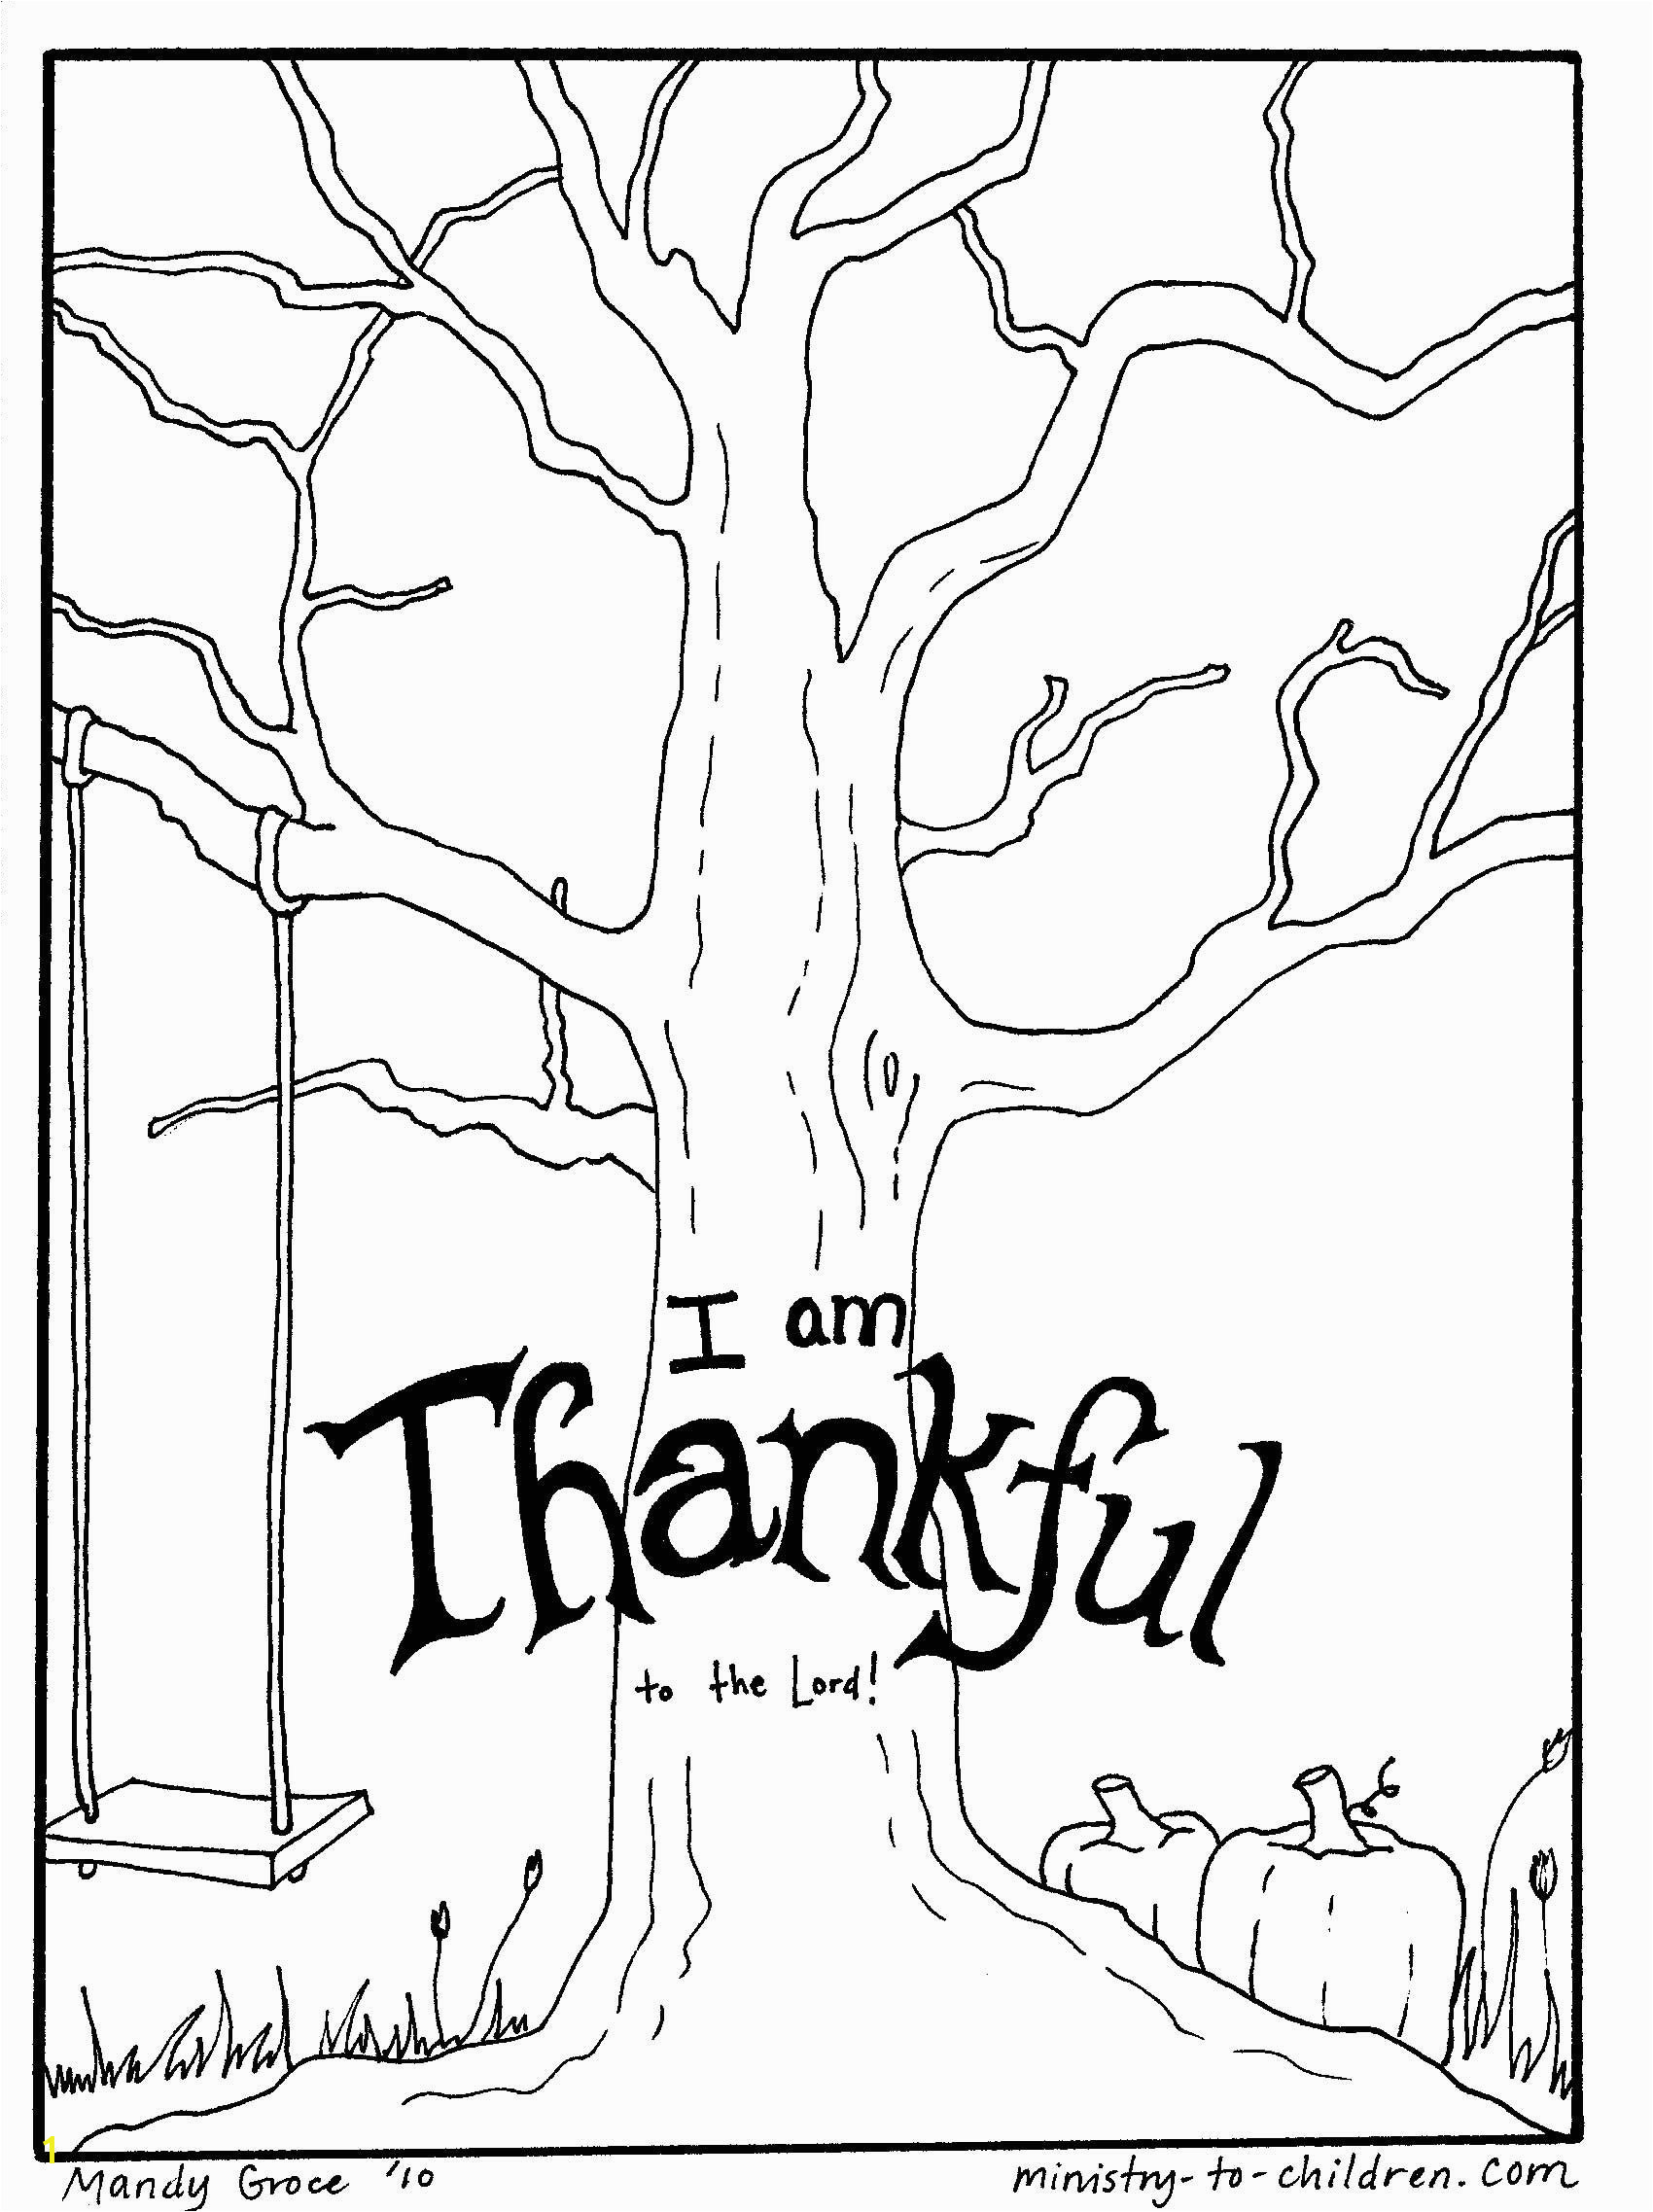 free thanksgiving coloring pages for preschoolers Thanksgiving Coloring Page Good Coloring Beautiful Children Colouring 0d